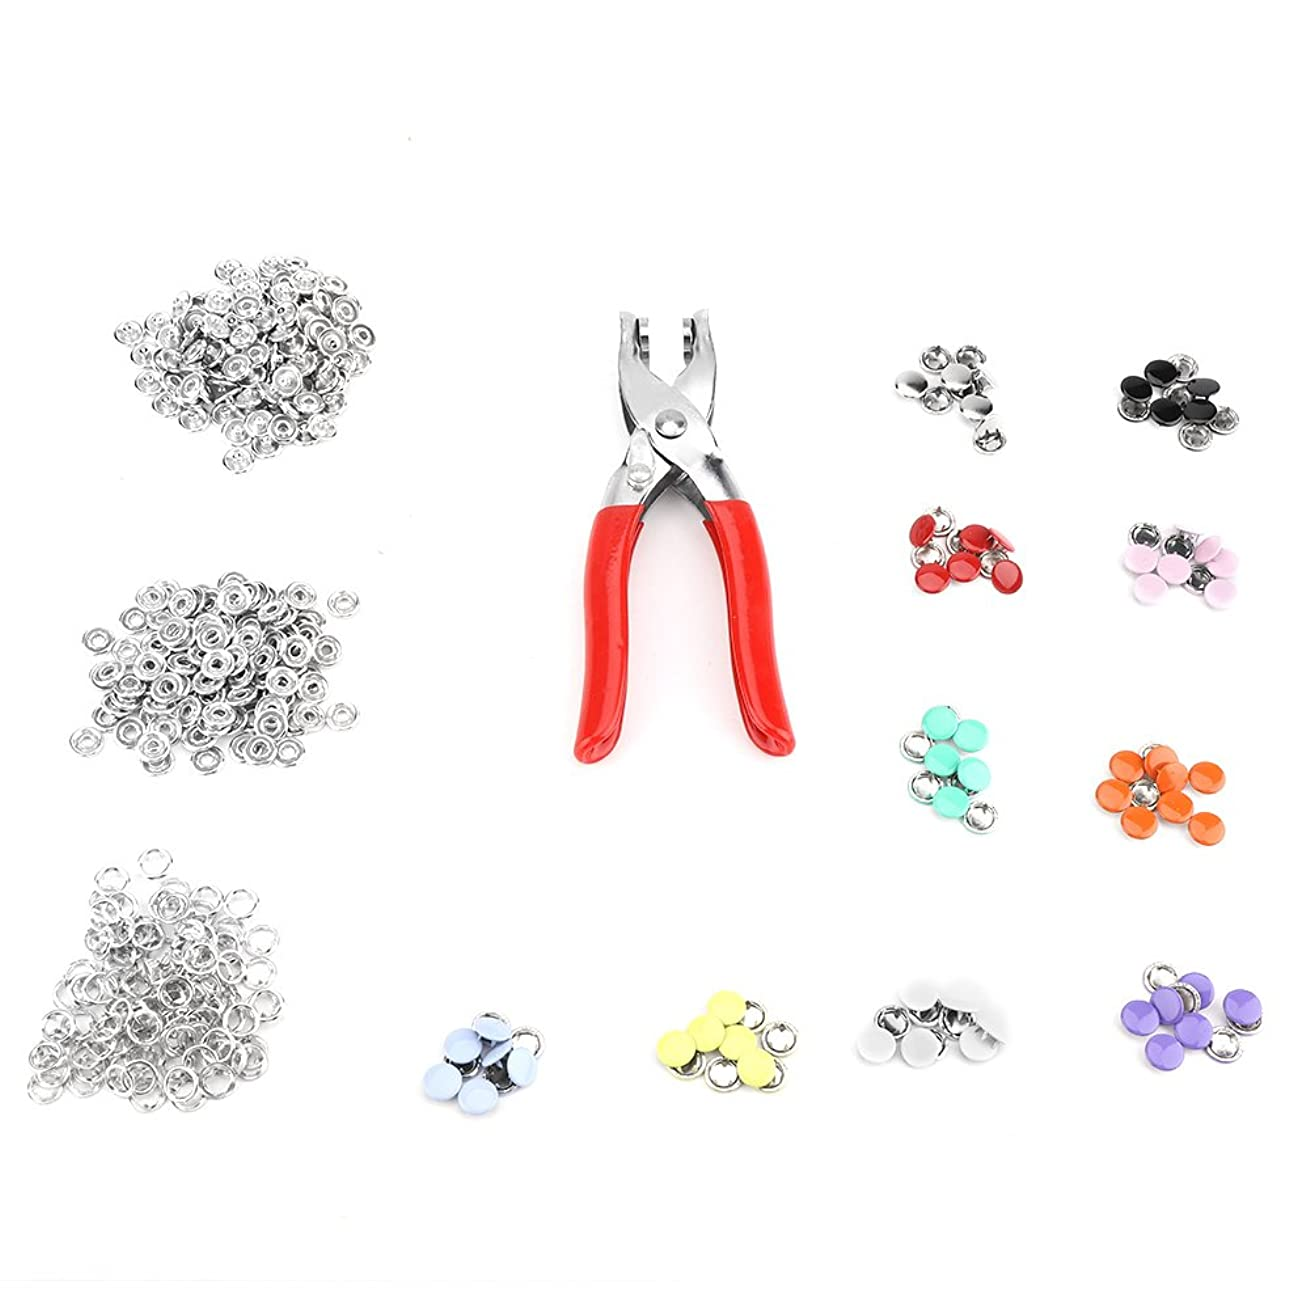 100 Sets Snap Fasteners Craft Pliers Tool,Metal Ring Button Press Studs Sewing Craft Fastener Snap Hand Pliers Craft Tool 9.5mm, 10 Colors